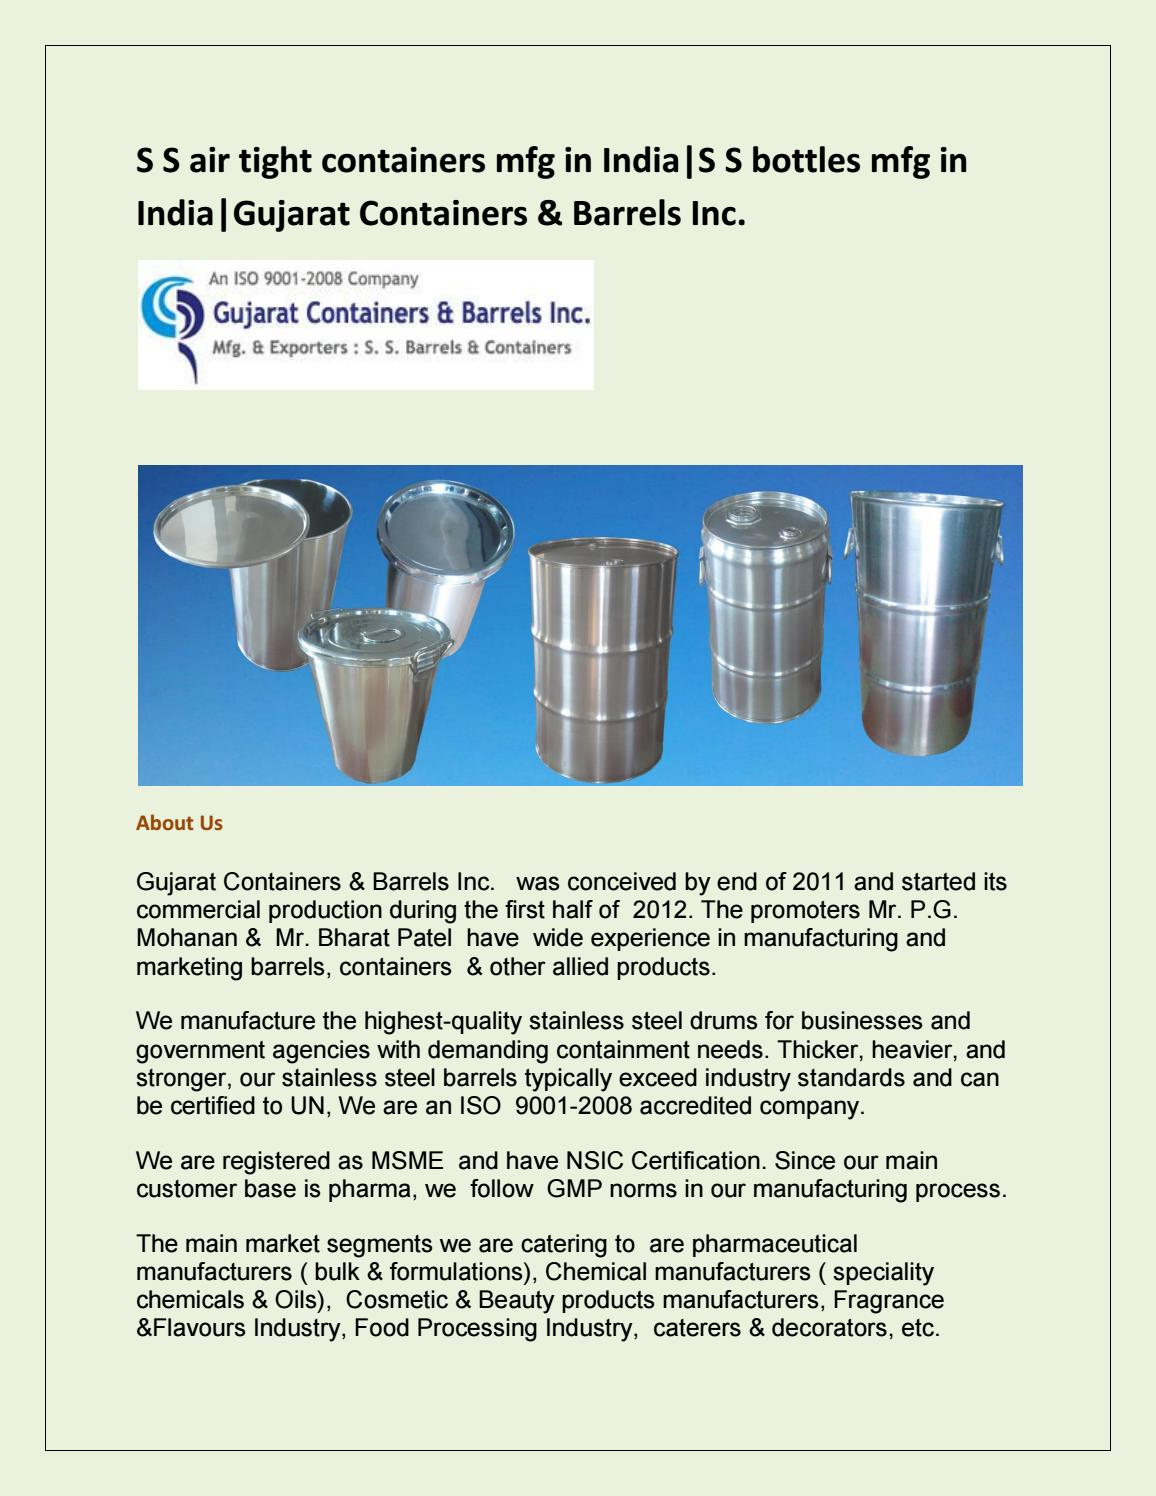 S S air tight containers mfg in India|S S bottels mfg in